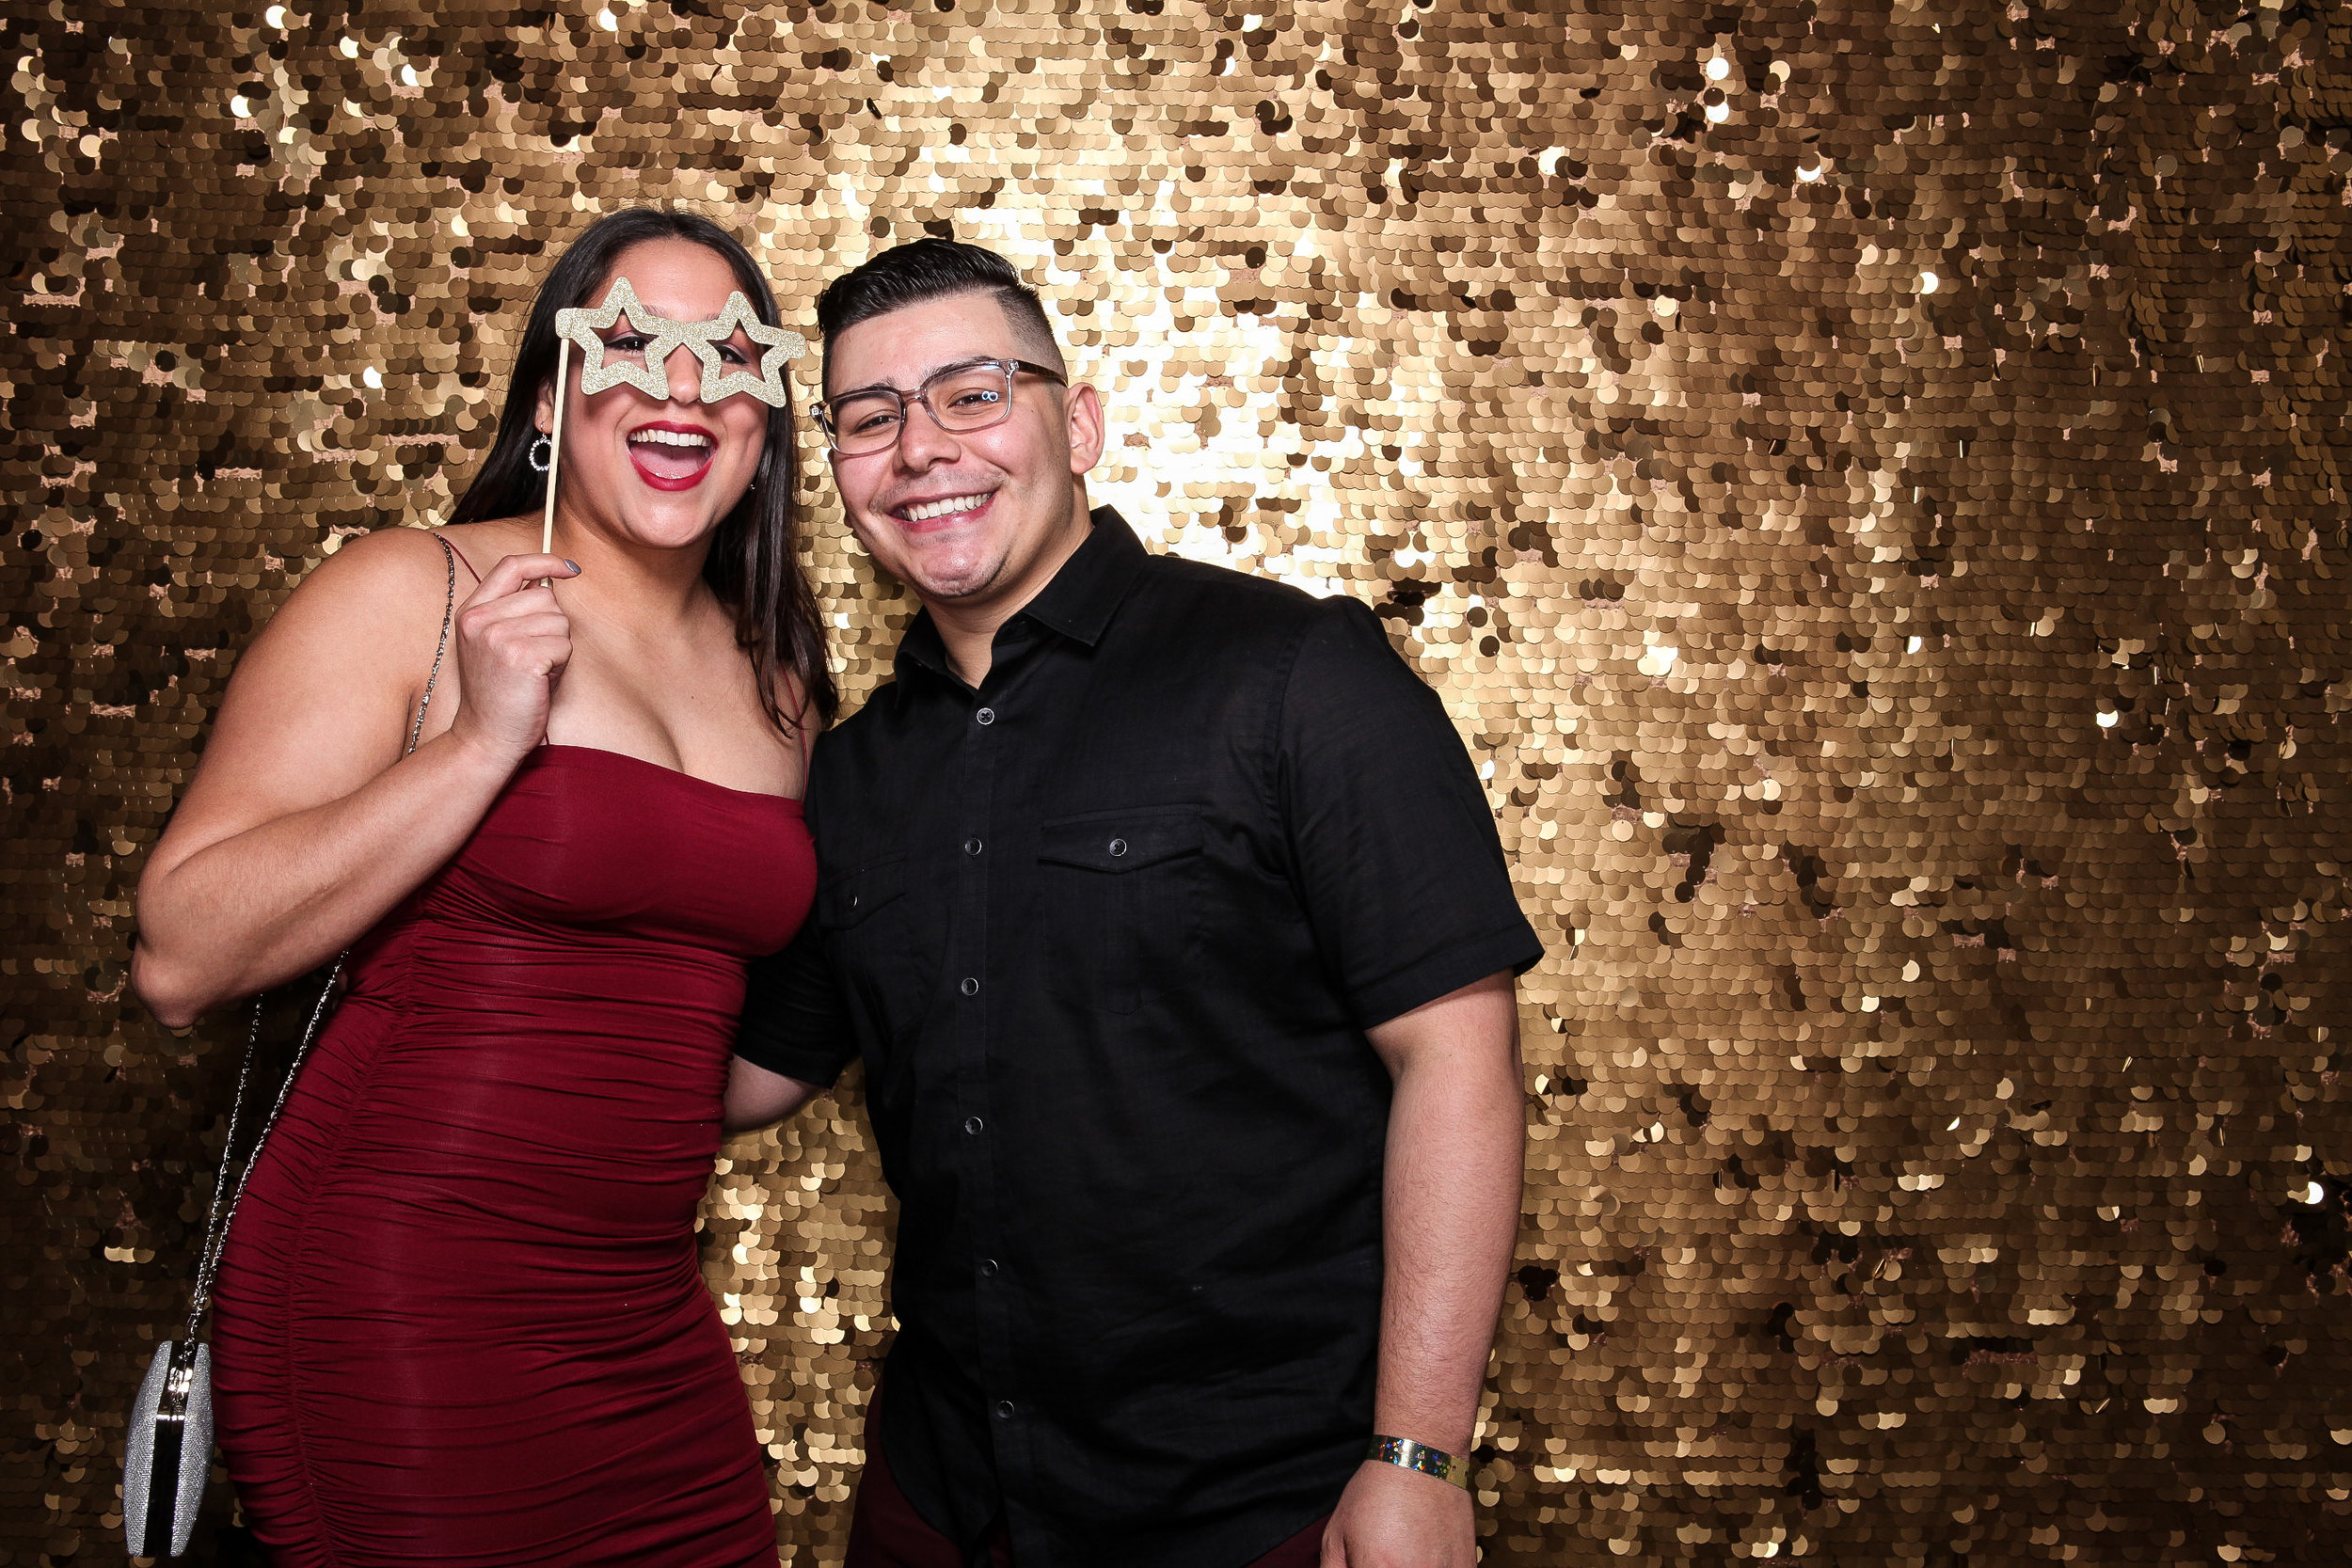 20190503_Adelphi_Senior_Formal-098.jpg